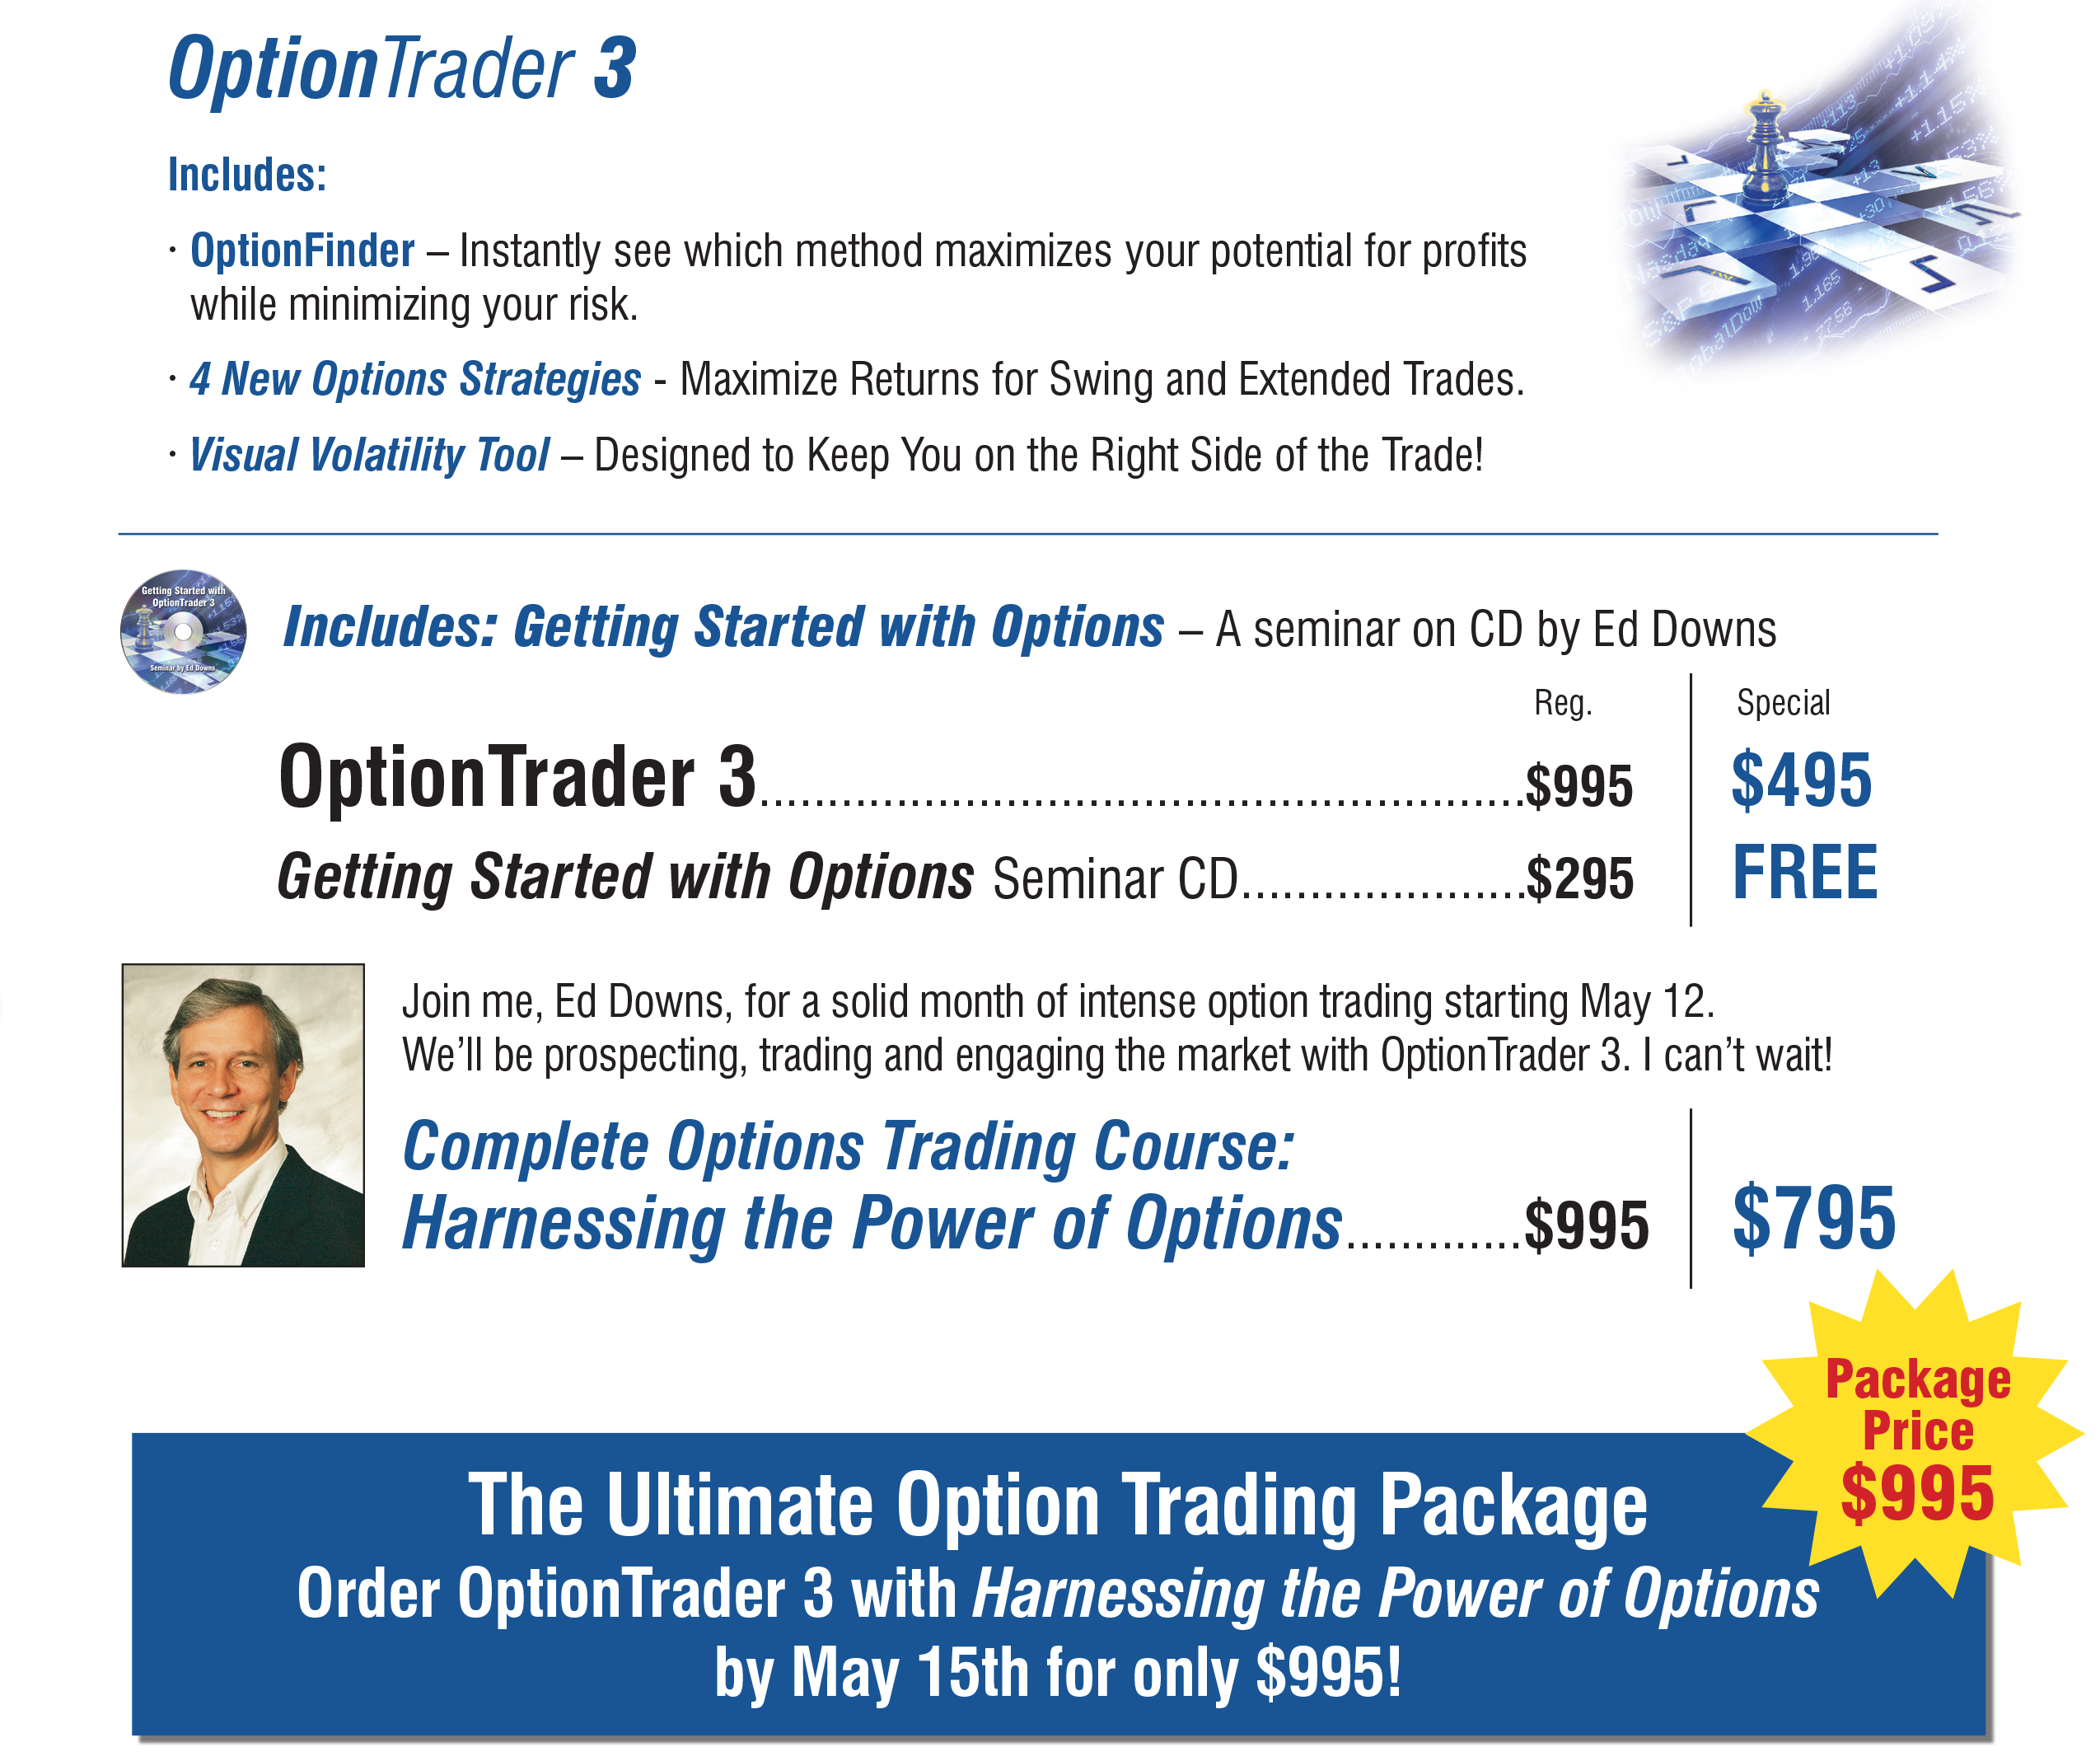 Option trading subscriptions